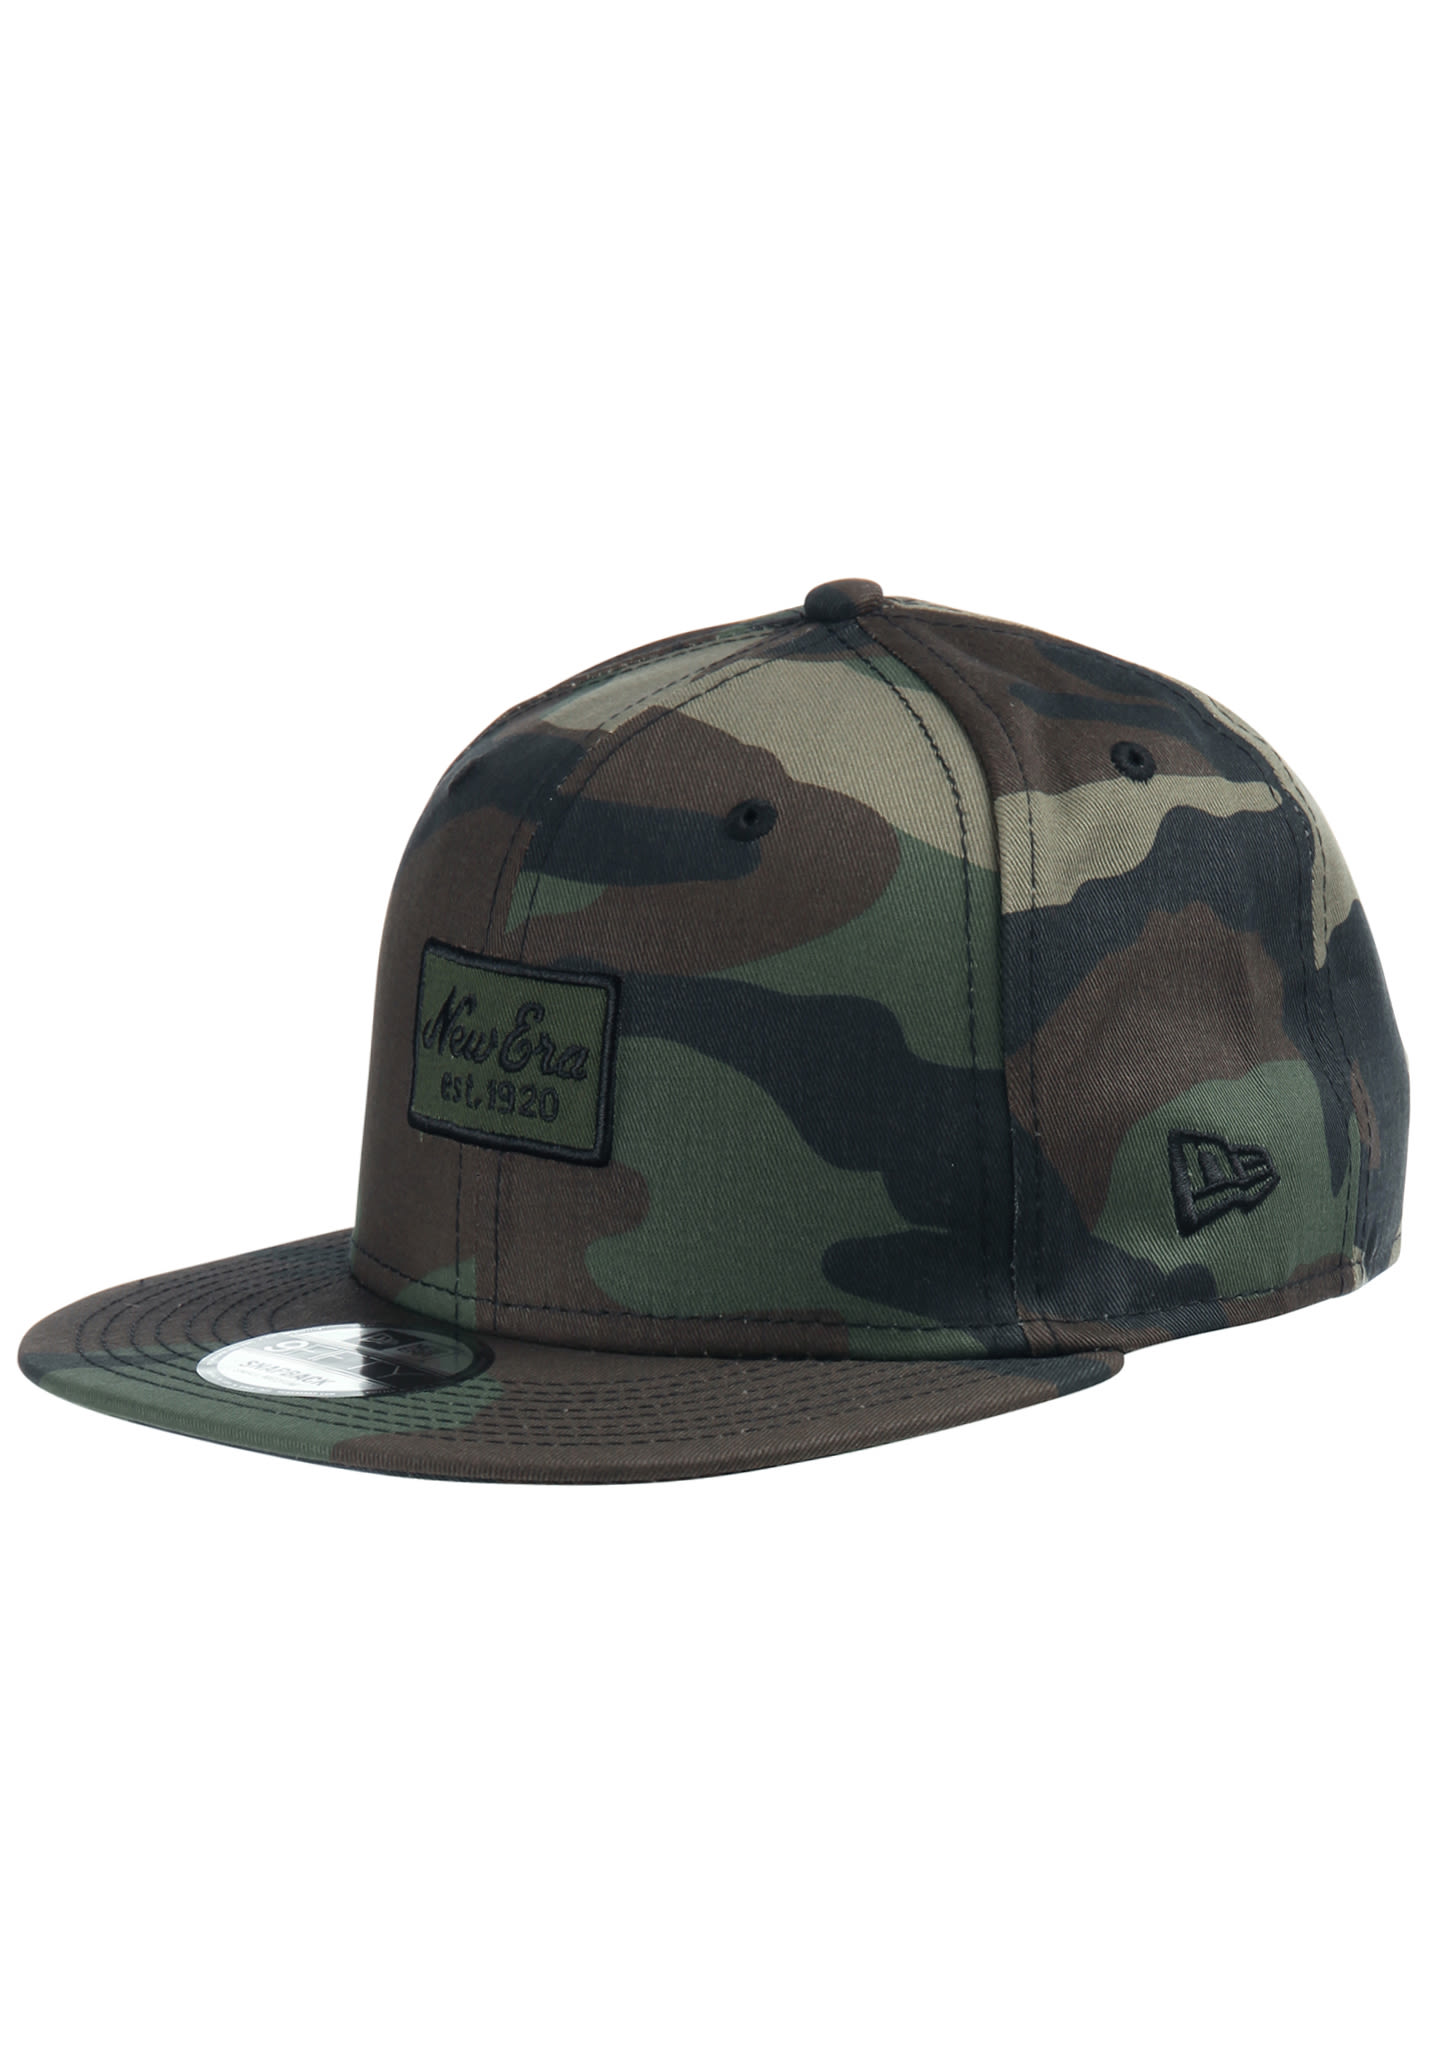 9c9e7368 NEW Era 9Fifty Script Patch - Snapback Cap - Camouflage - Planet Sports